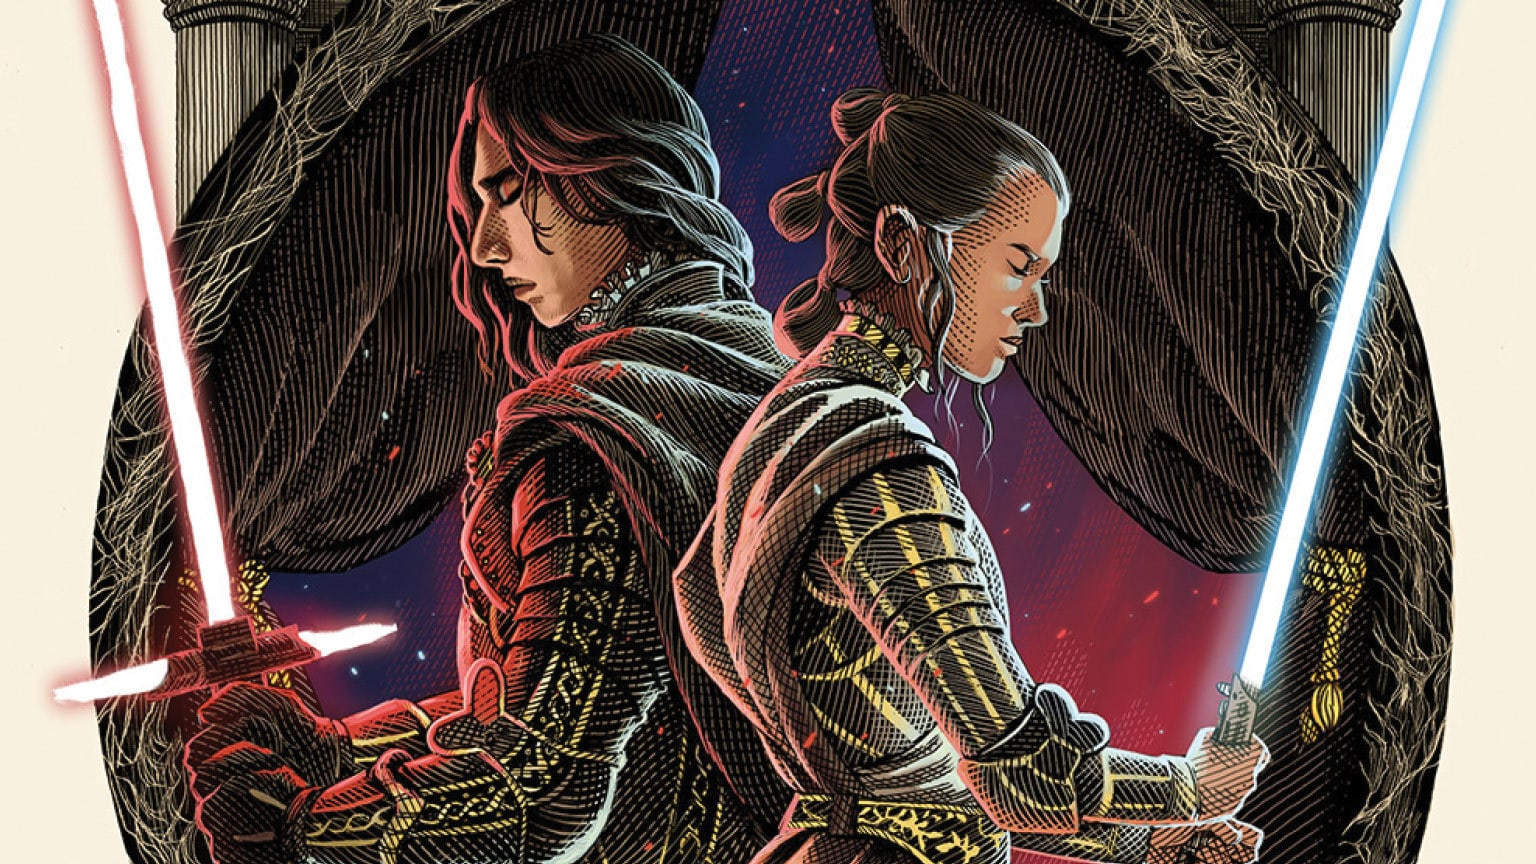 Checketh Out the Cover to The Merry Rise of Skywalker